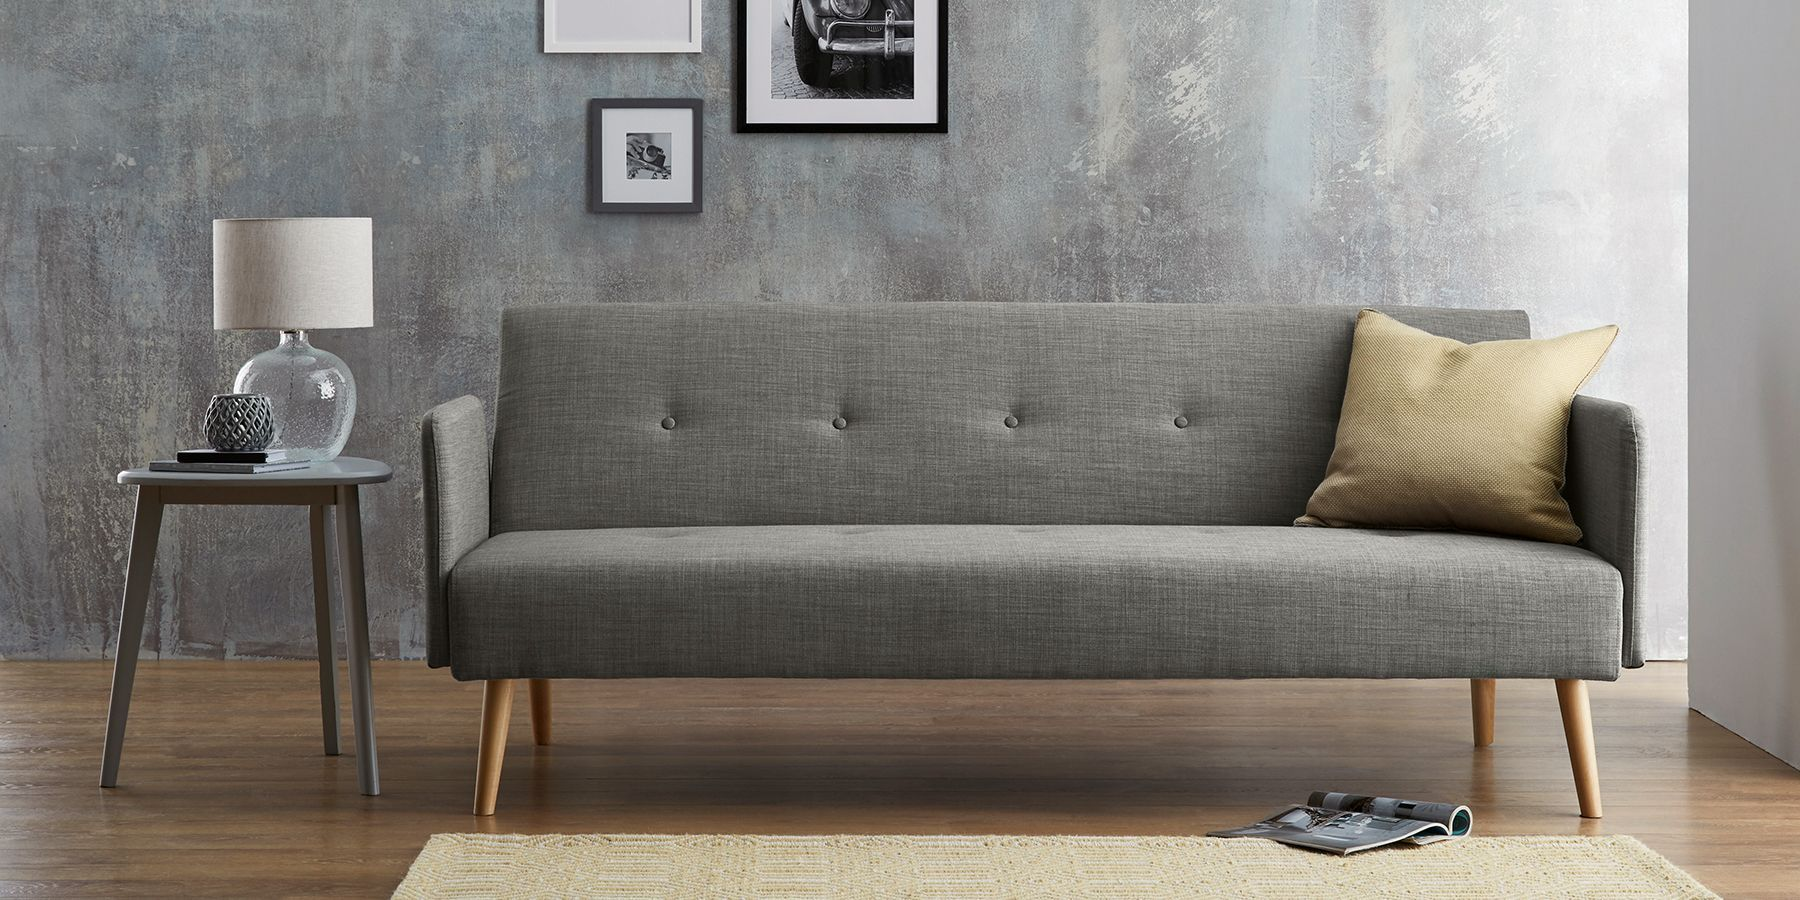 Finnley Occasional Sofa Bed Large 2 People Simple Contemporary Charcoal From The Next Uk Online